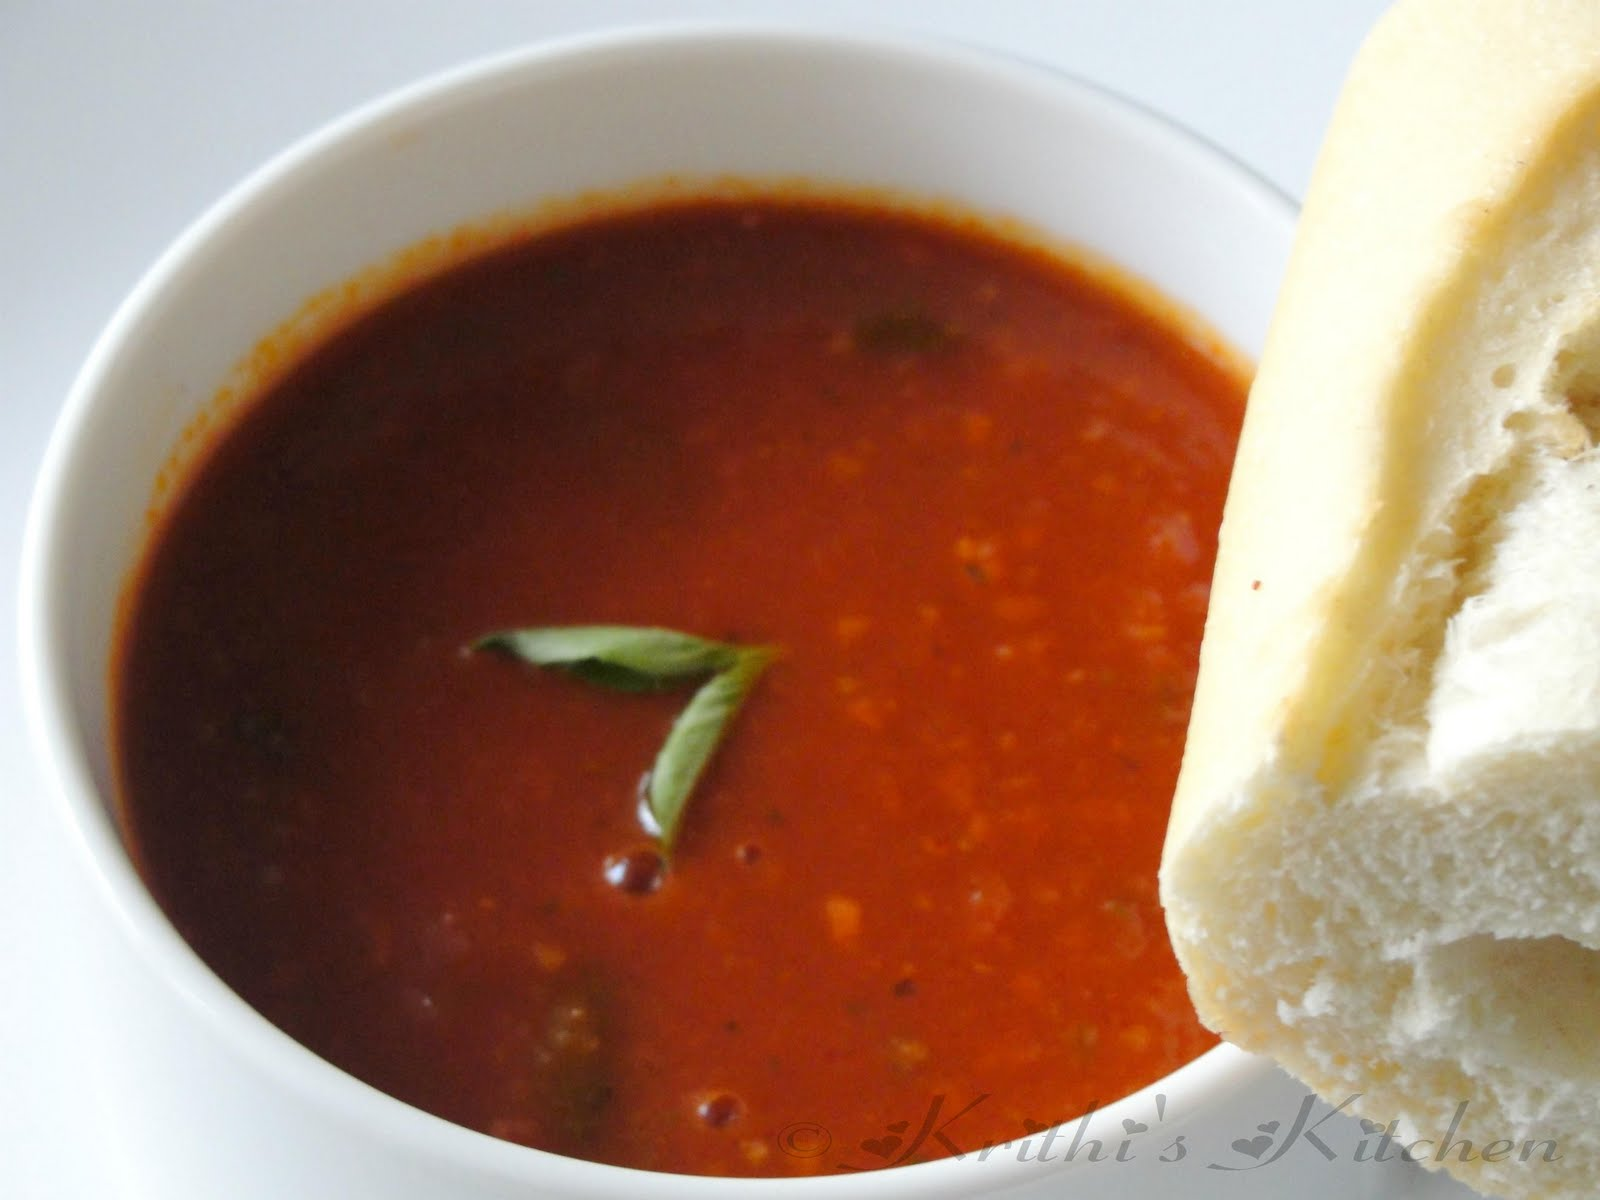 krithi u0027s kitchen tomato basil soup soup recipes